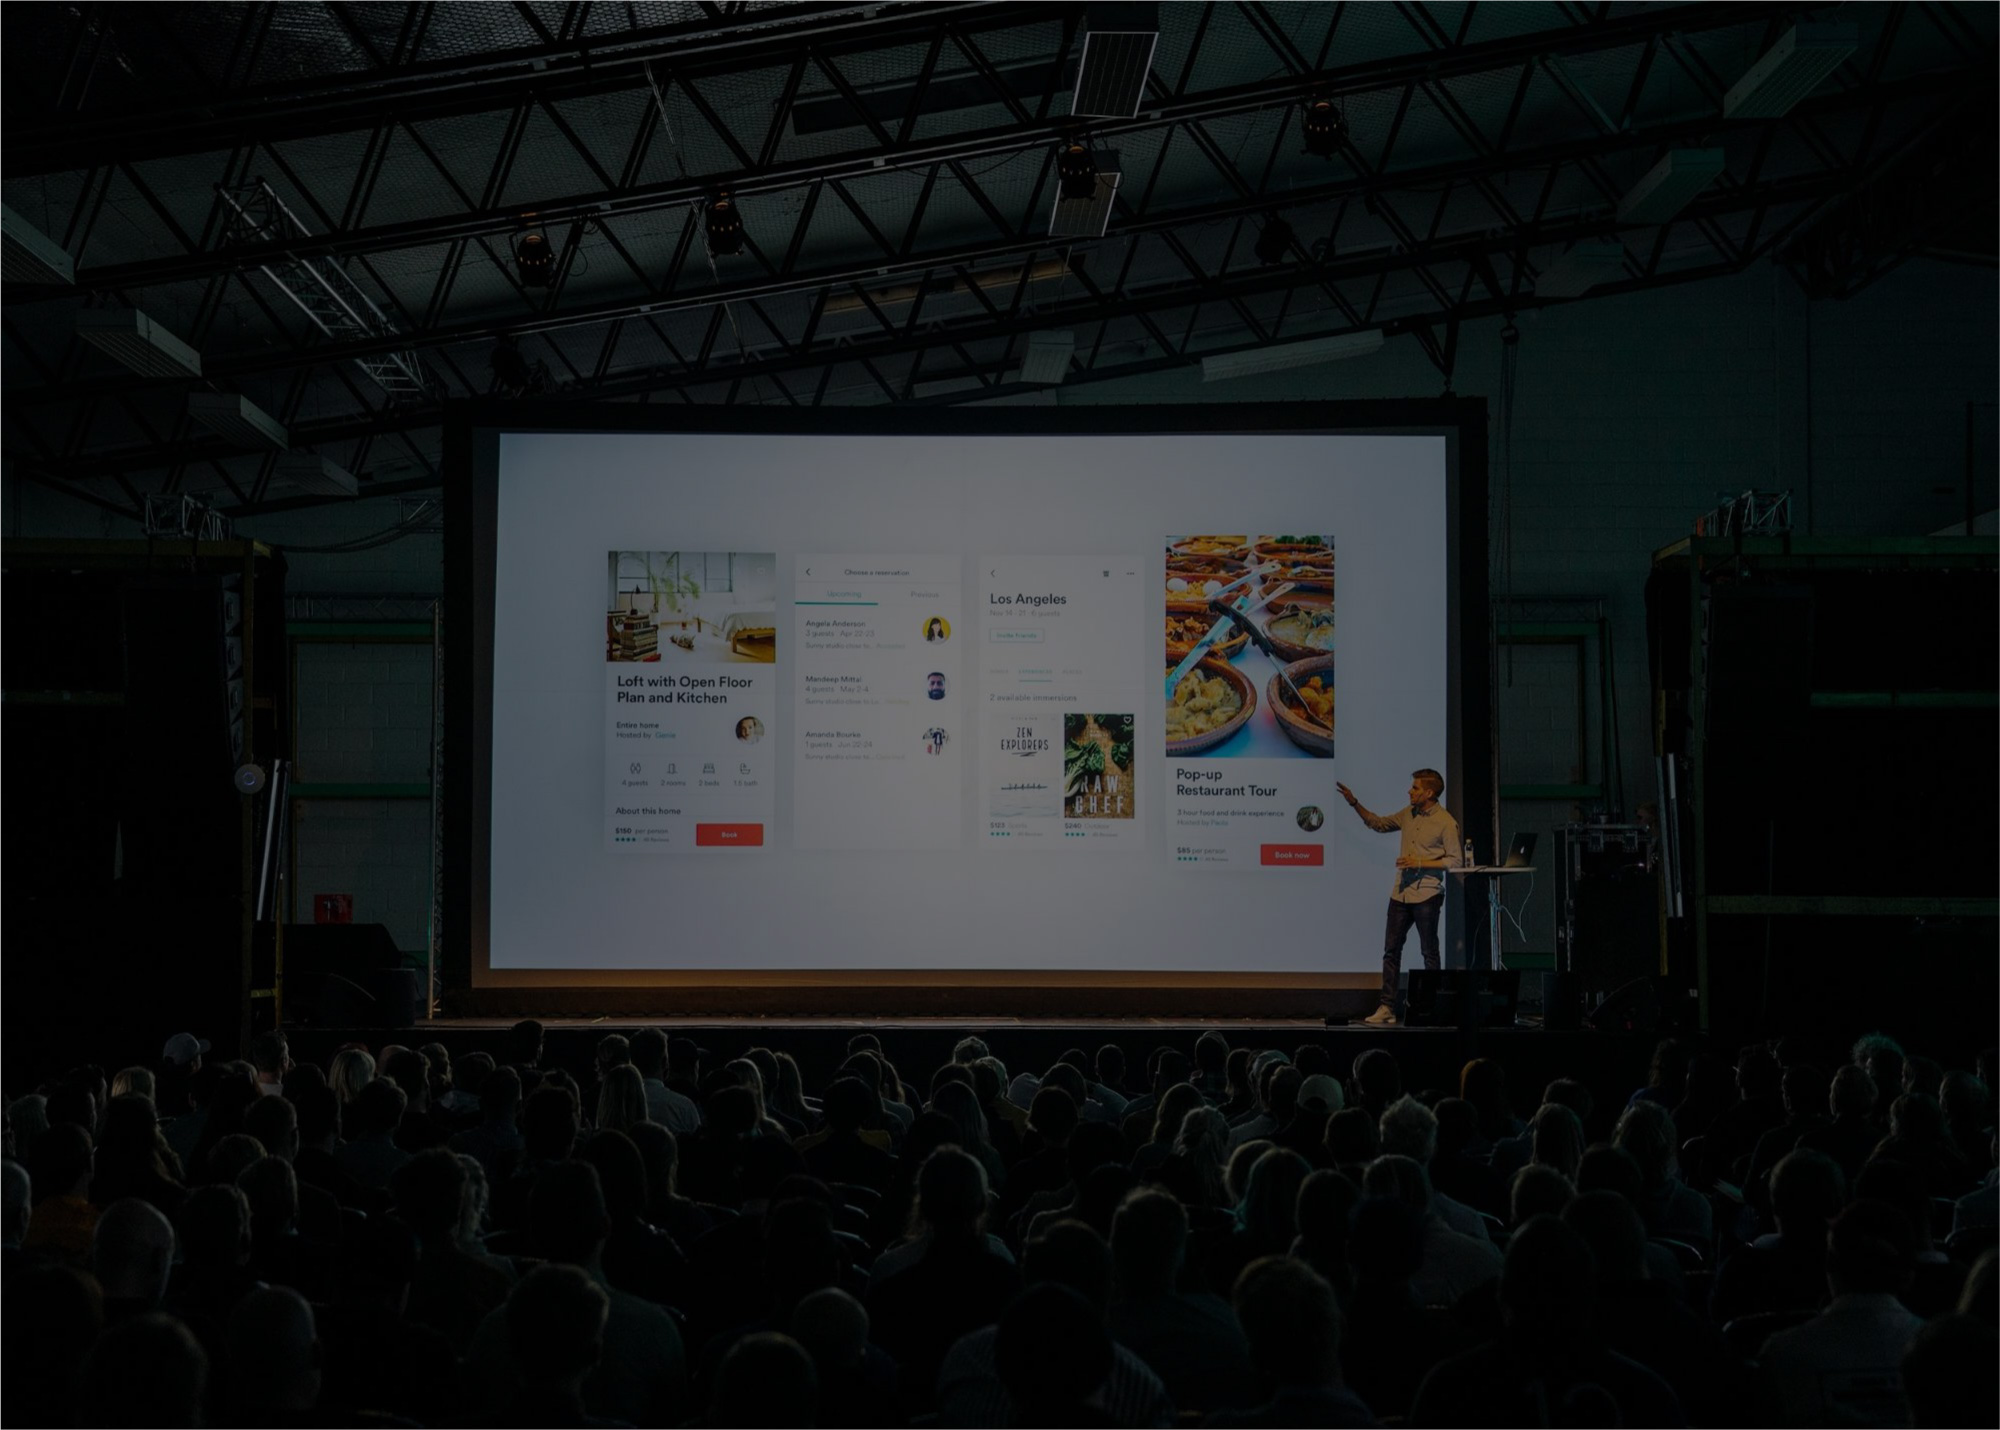 powerpoint-alternatives-the-top-10-presentation-software-in-2018-16